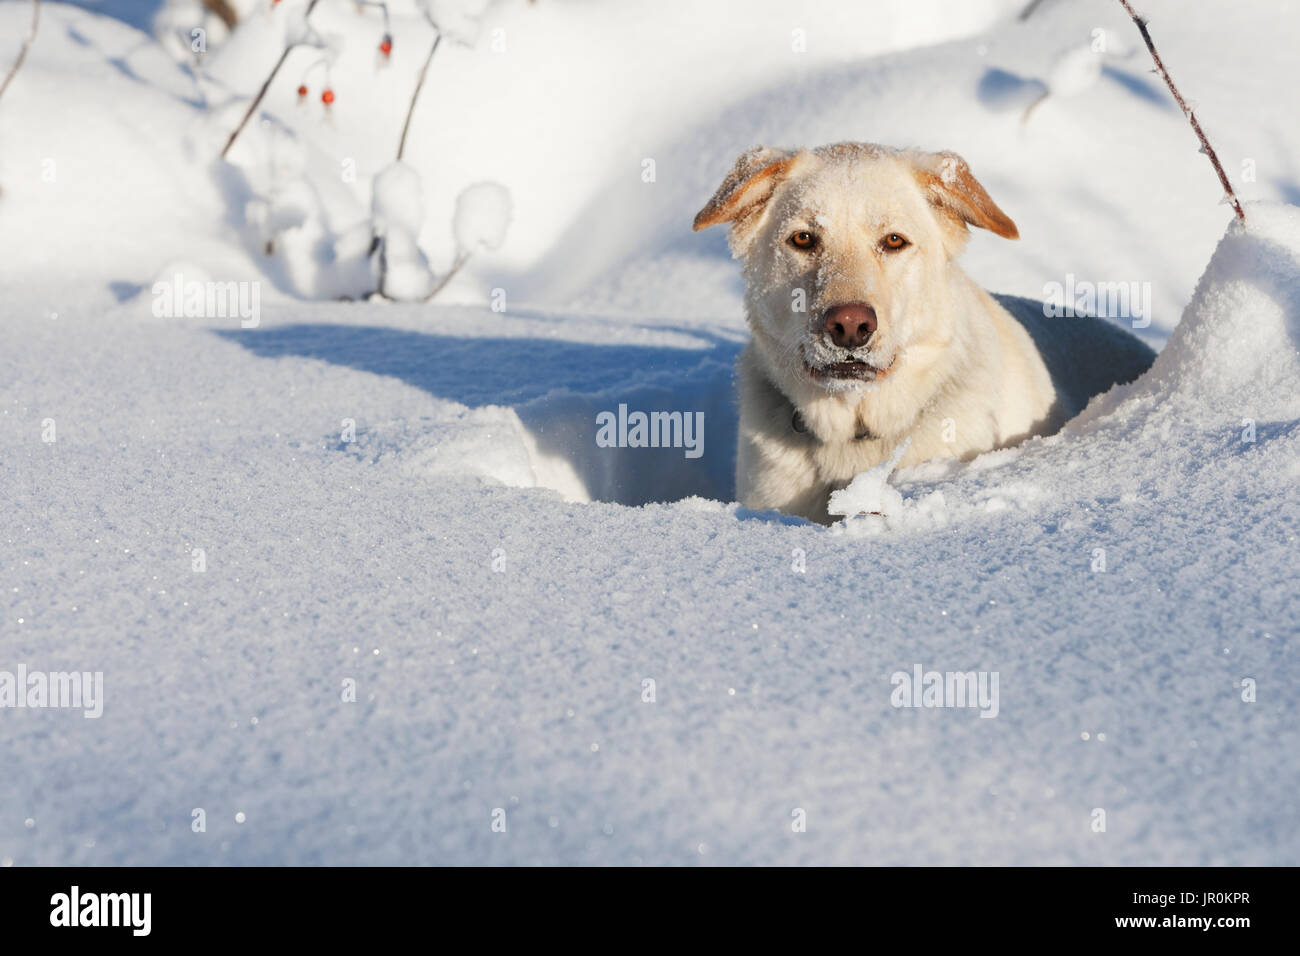 A Golden Labrador Retriever Lays In The Deep Snow Looking At The Camera; Alaska, United States Of America - Stock Image